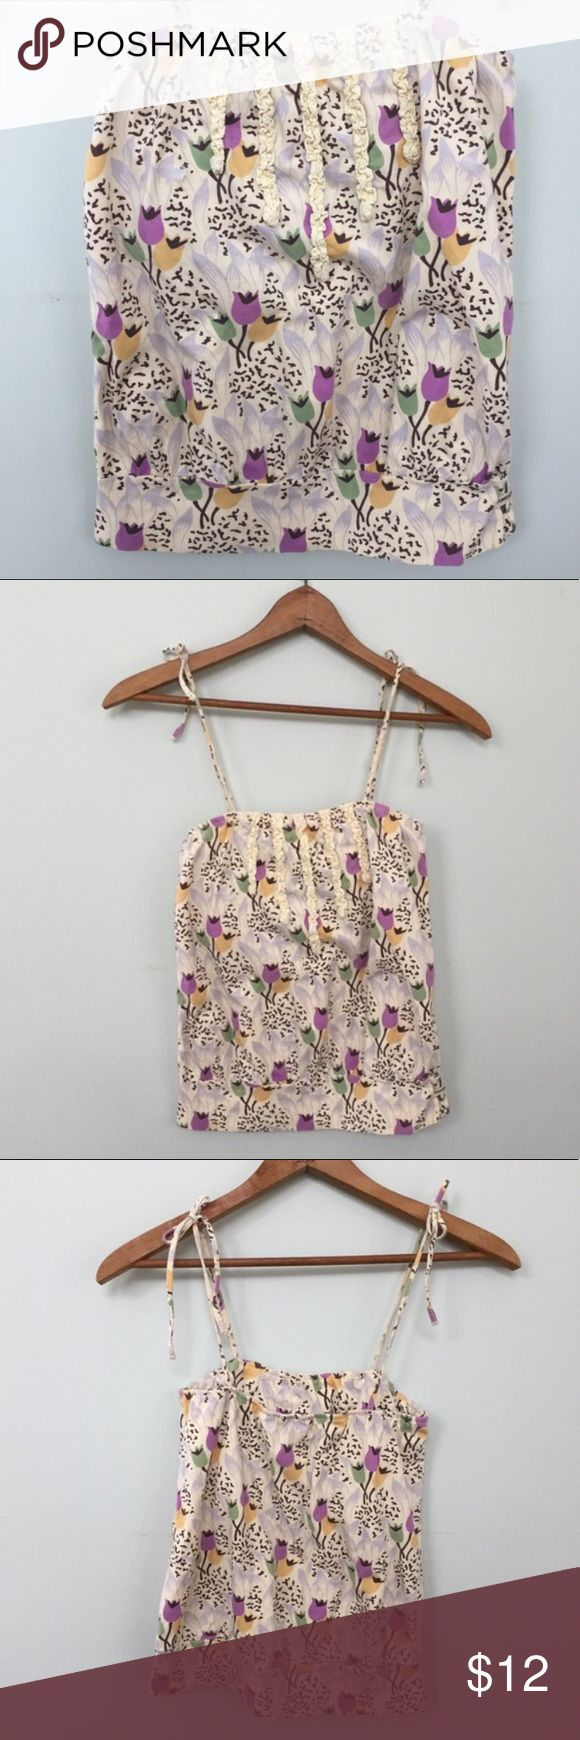 American Eagle | AE Tulip Print Floral Tank Straps tie at shoulders and adjustable. Very versatile - I have worn it as a halter, tube top or tying over the shoulders. Built in shelf bra. American Eagle Outfitters Tops